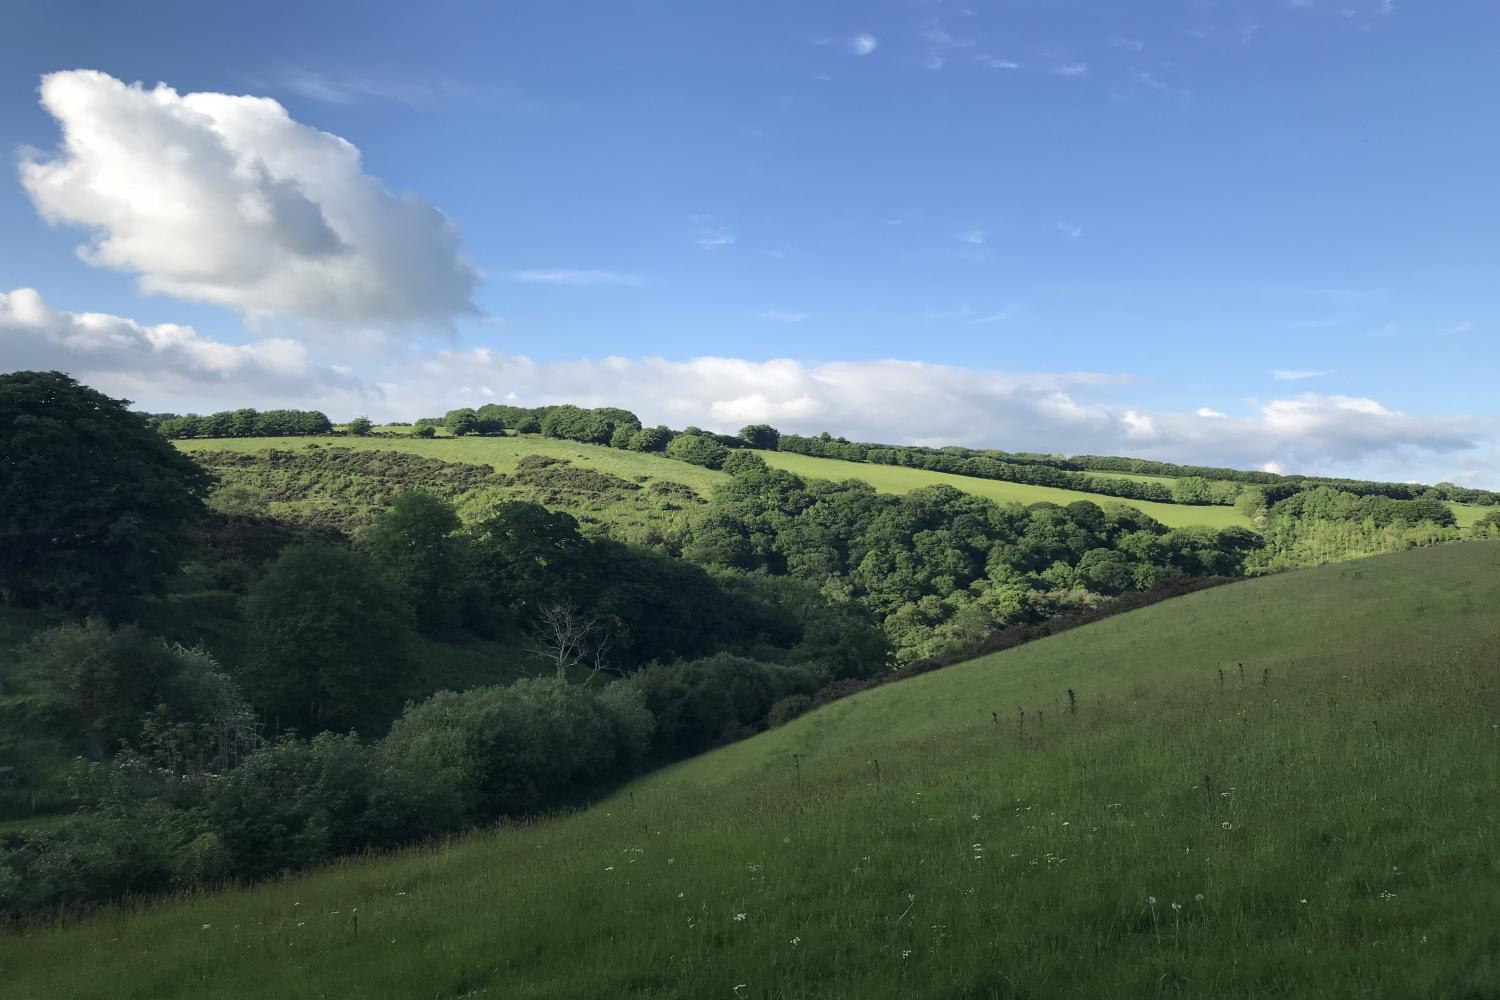 The Cowshed surrounding area of natural beauty